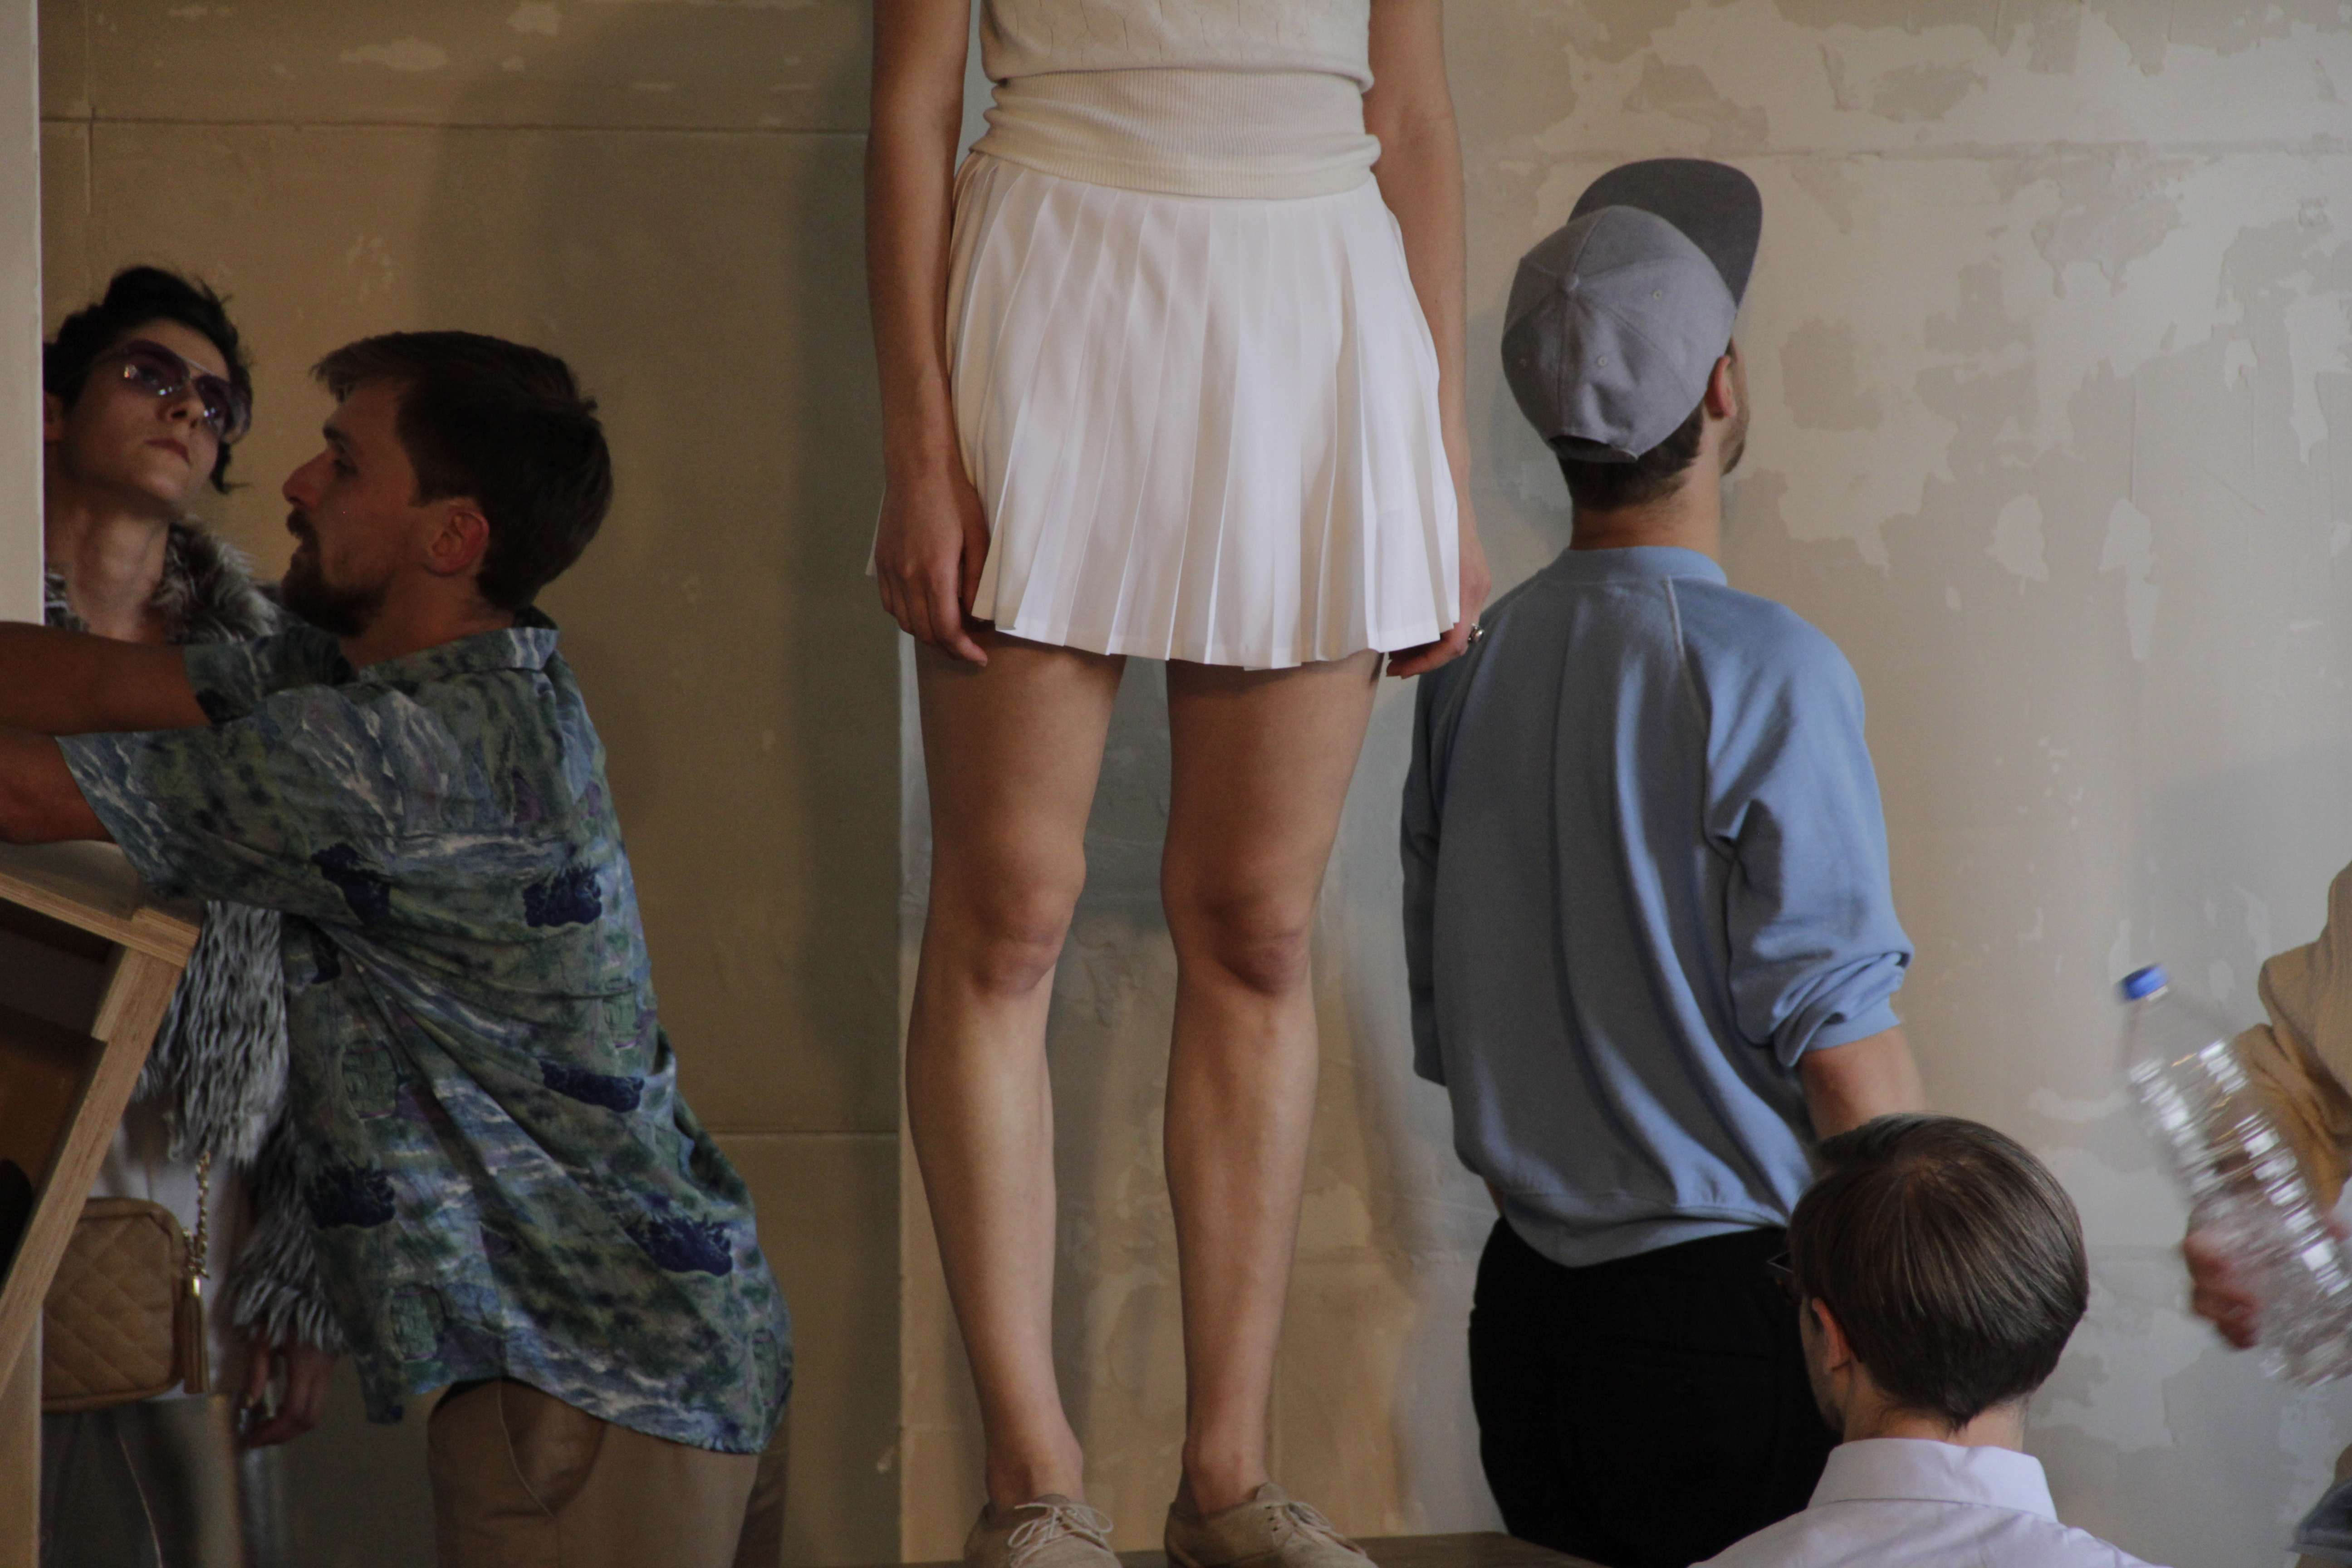 woman in a skirt and other performers of the eternal return